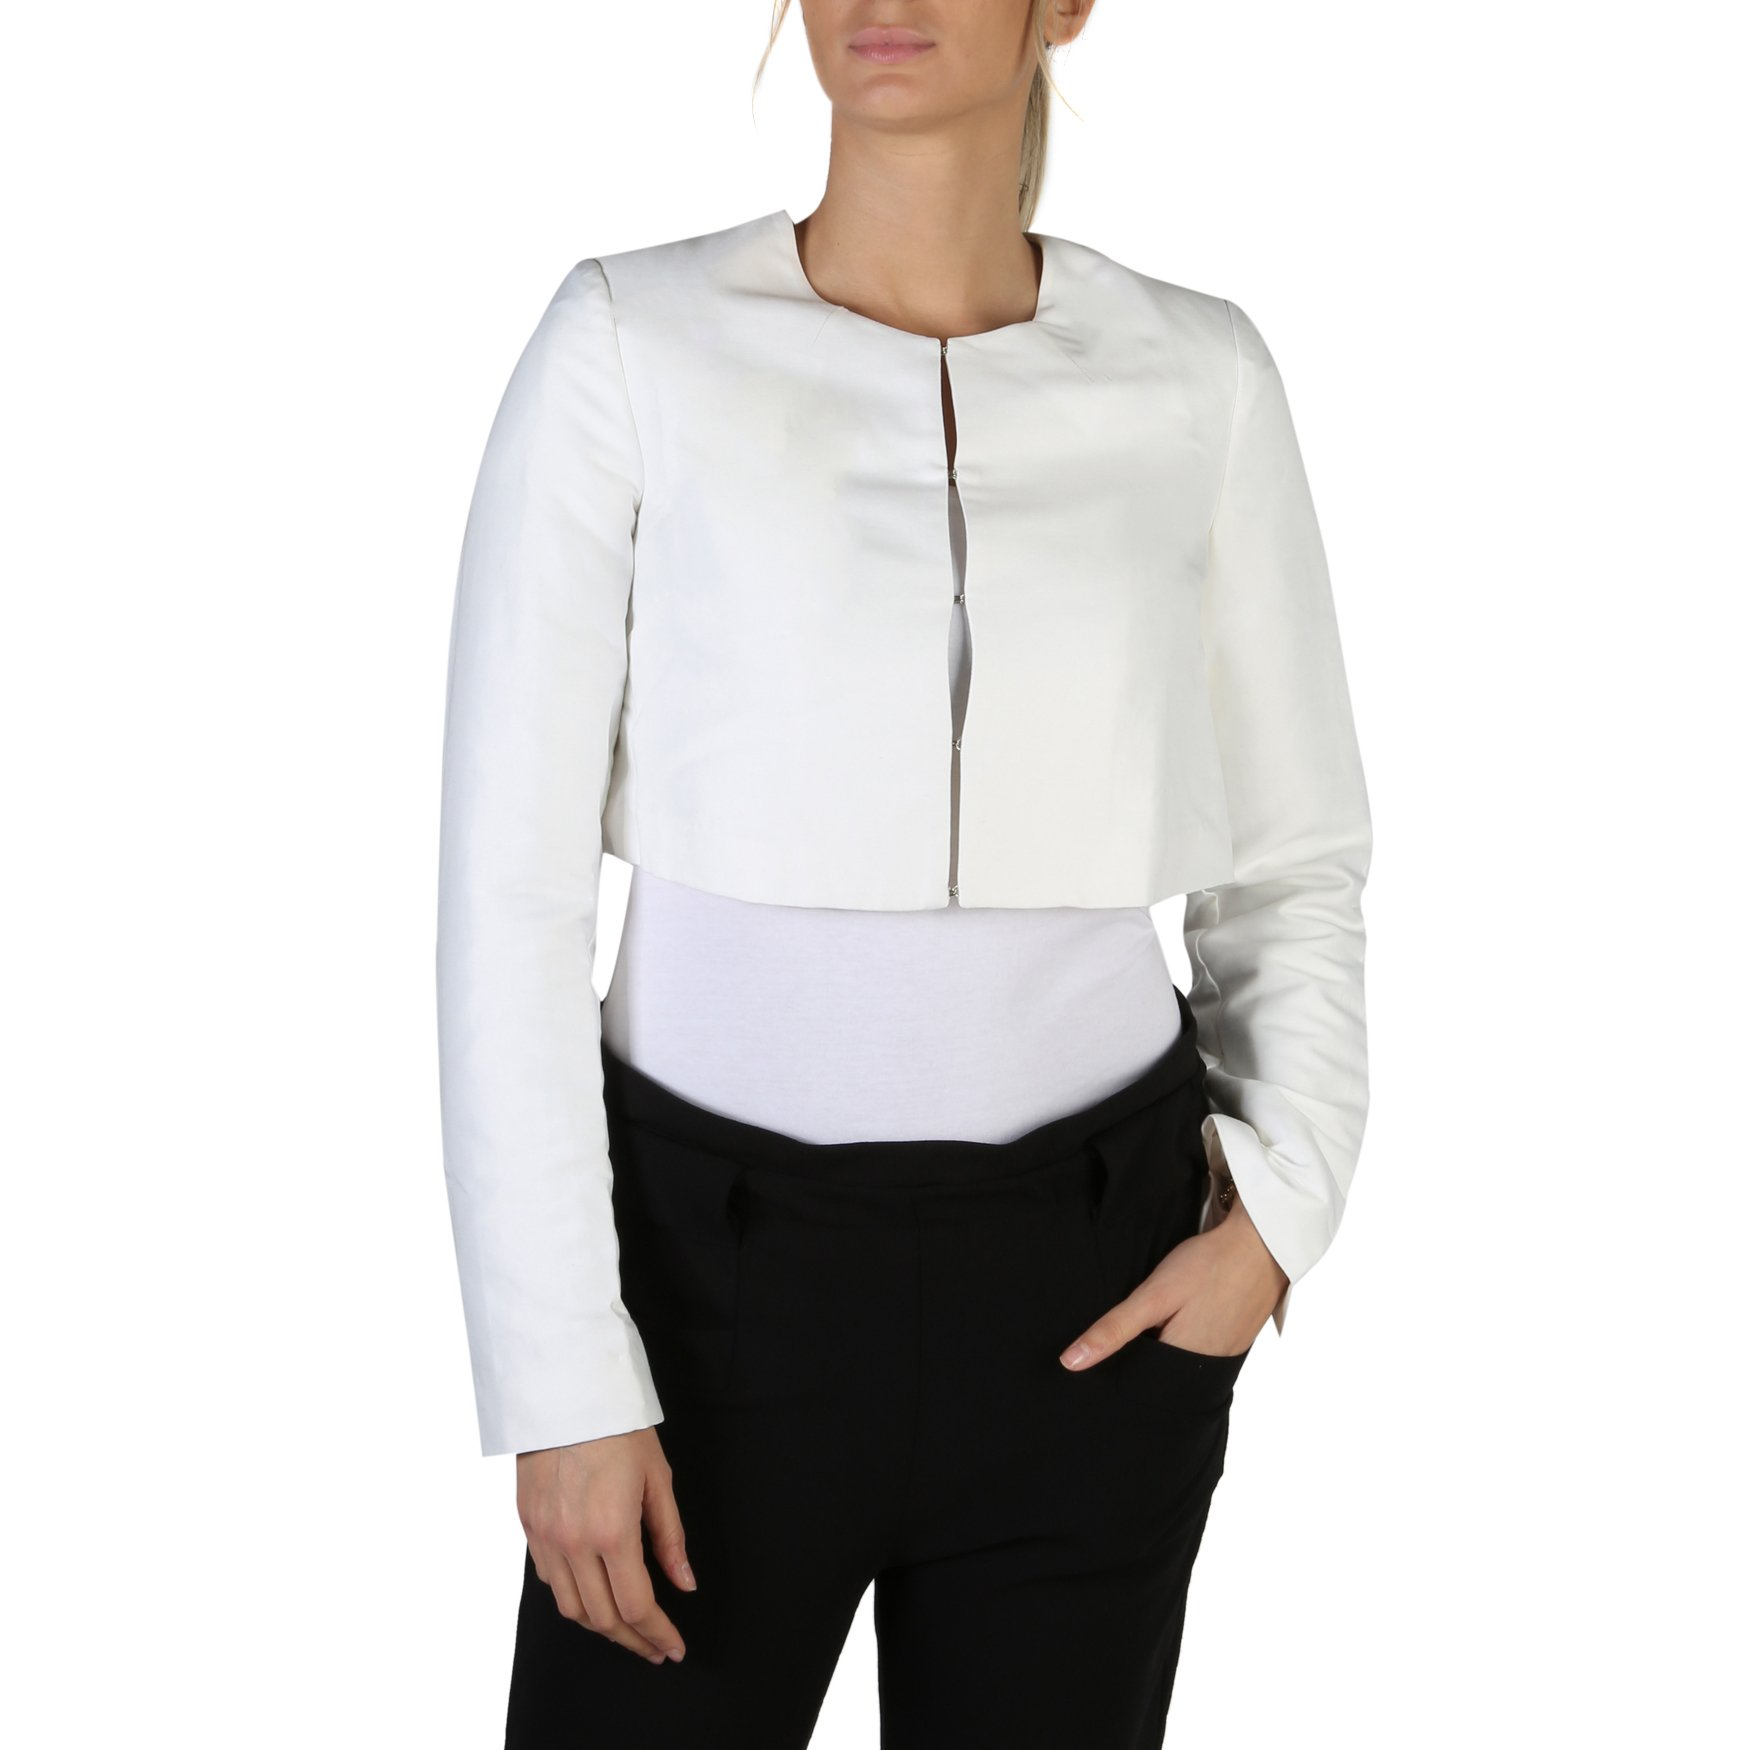 Guess Women's Jacket Various Colours W83N16 - white XS